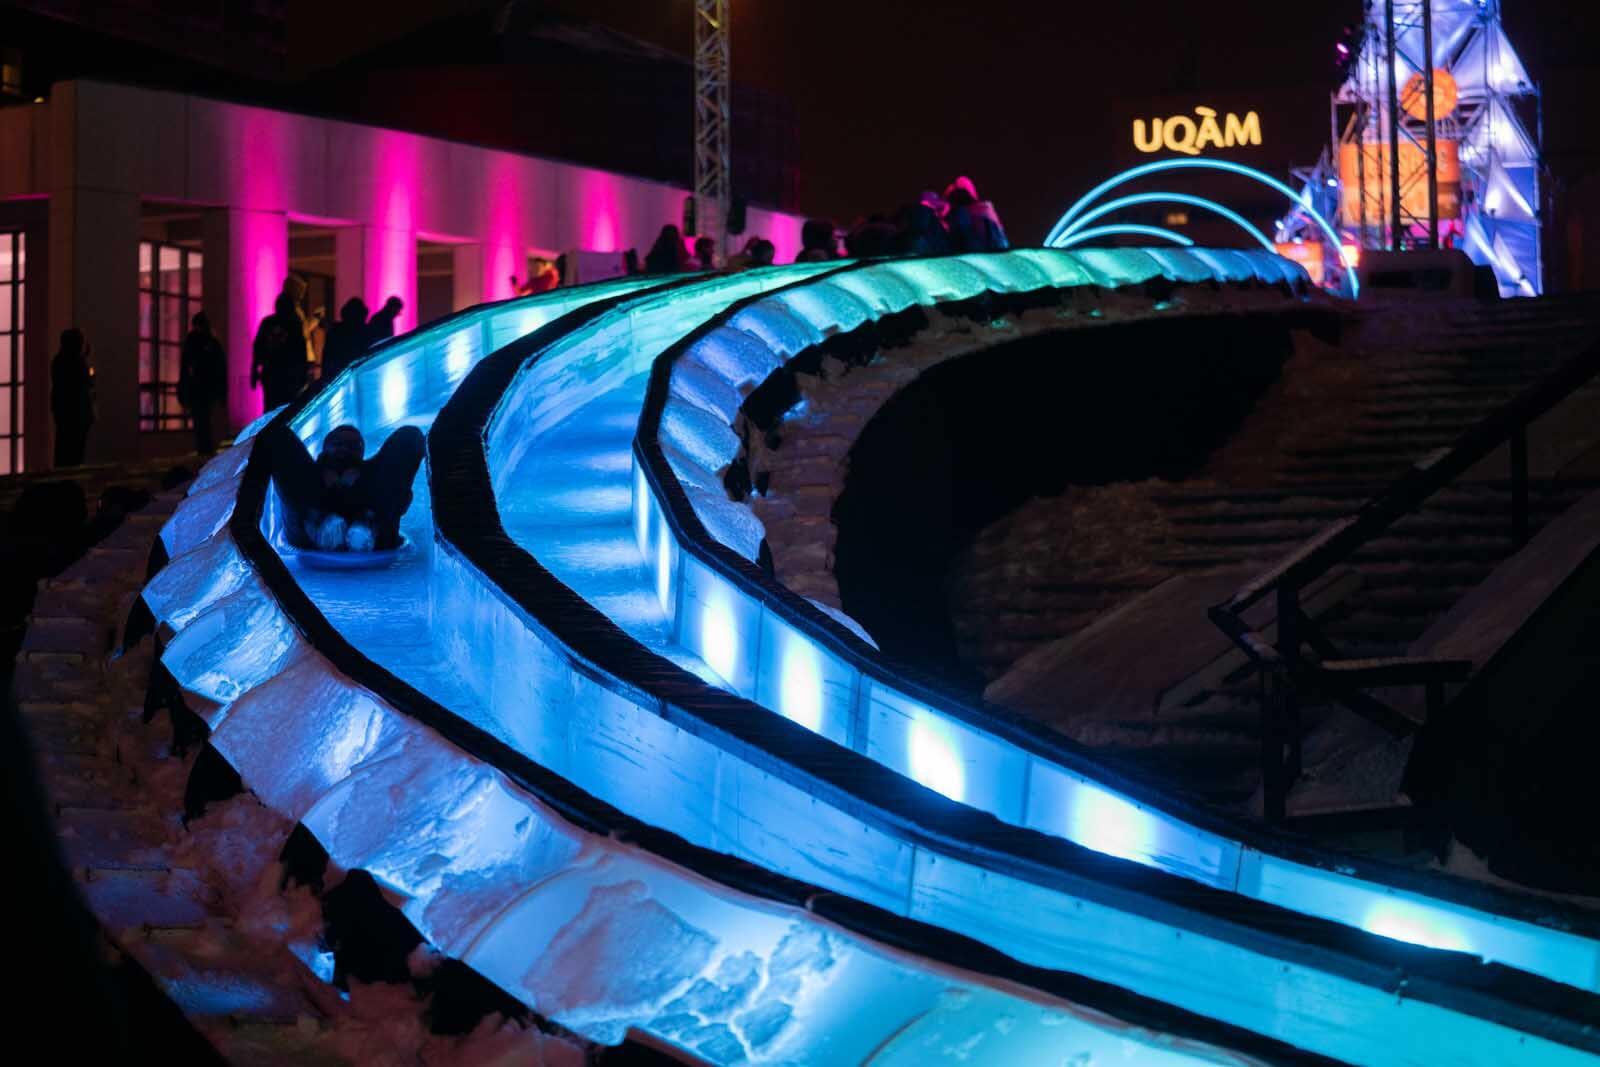 The electric ice slide at the Montreal in winter Lumiere festival